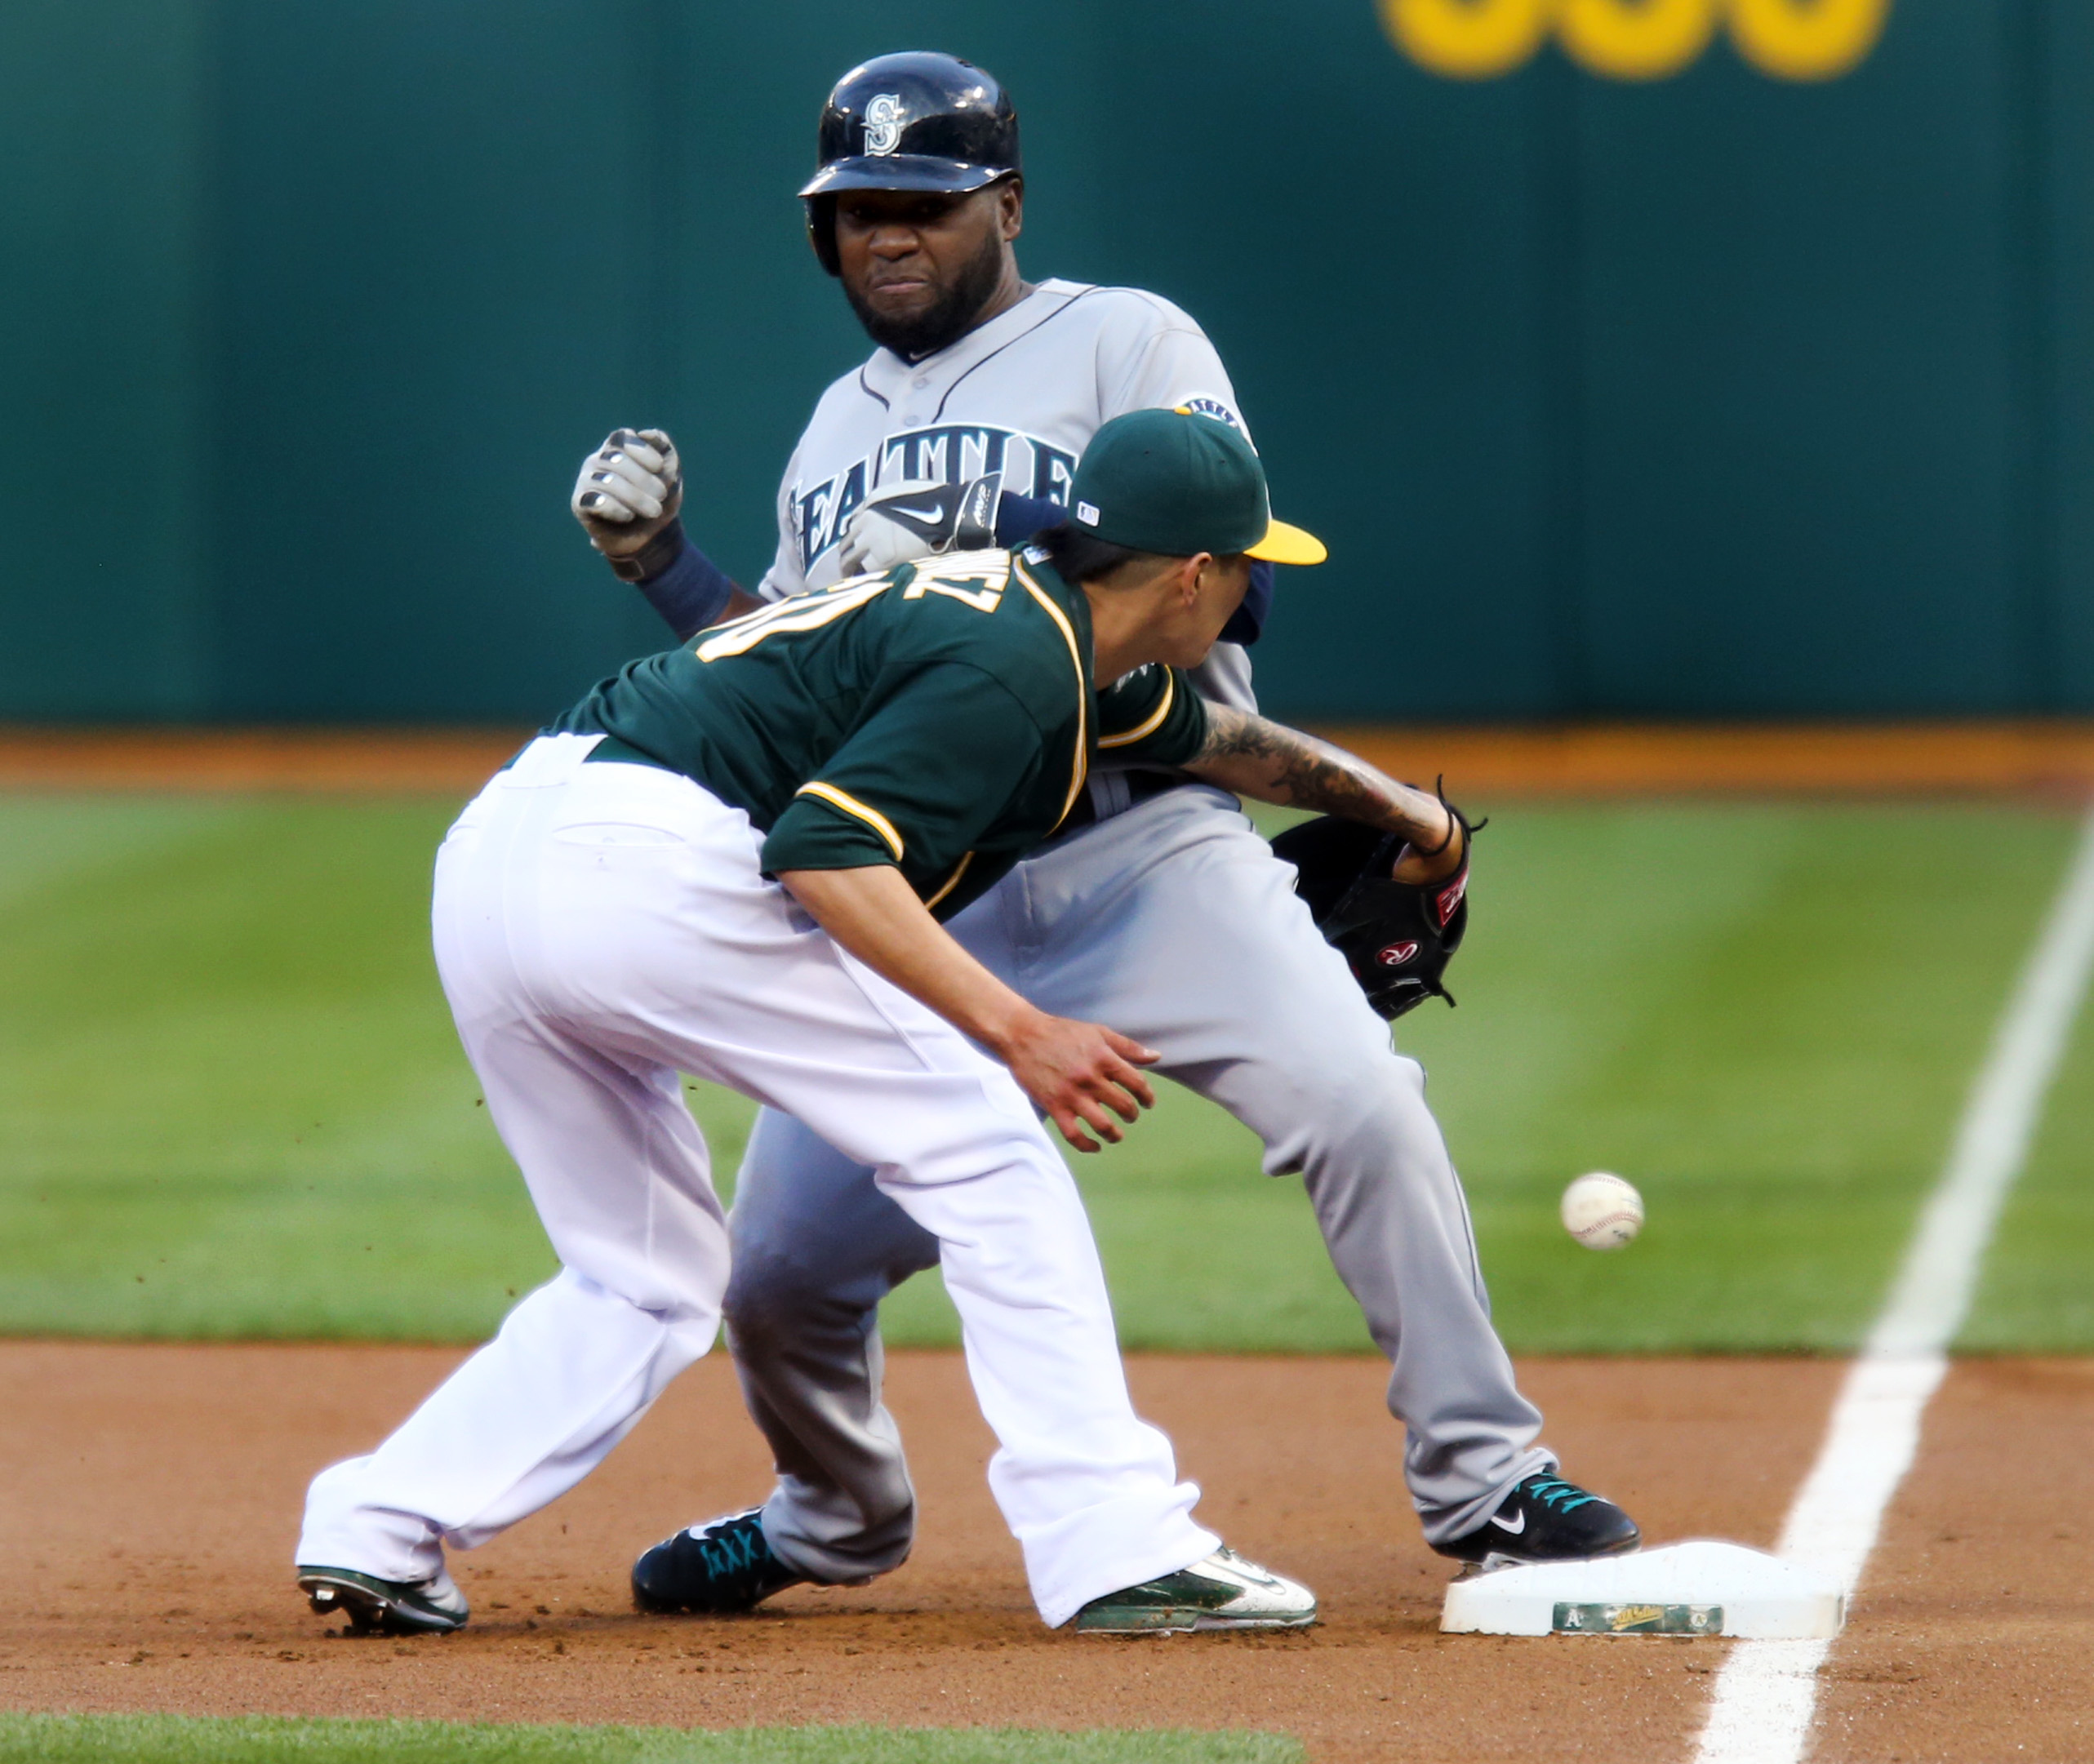 Oakland Athletics starting pitcher Jesse Chavez (60) fails to catch the throw at first base as Seattle Mariners' Abraham Almonte (36) takes advantage of the error and runs to second in the first inning of their MLB game at O.co Coliseum in Oakland, Calif.